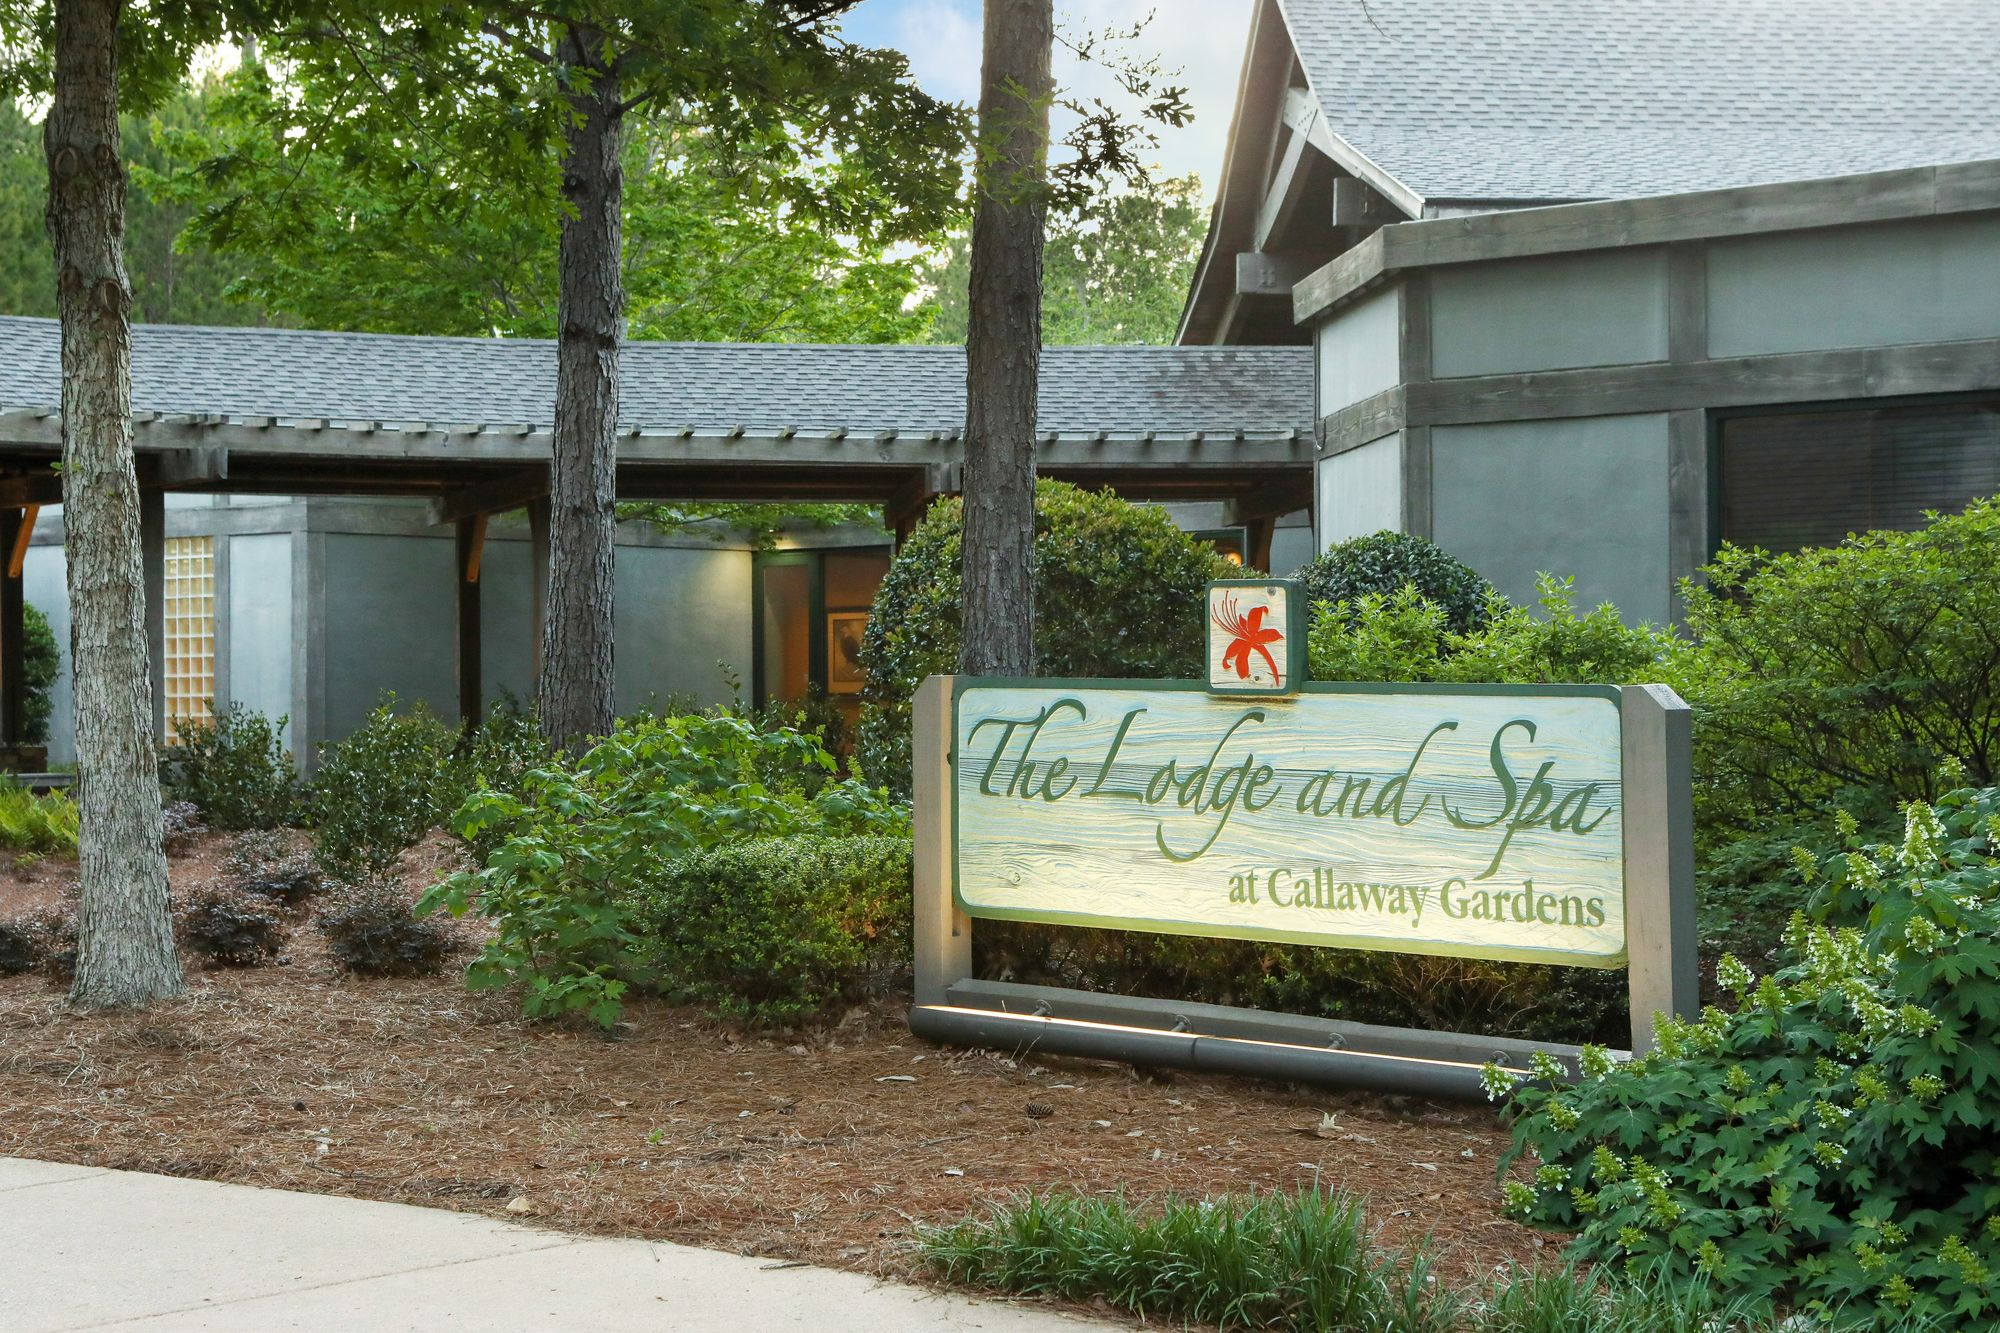 The Lodge & Spa at Callaway Gardens on